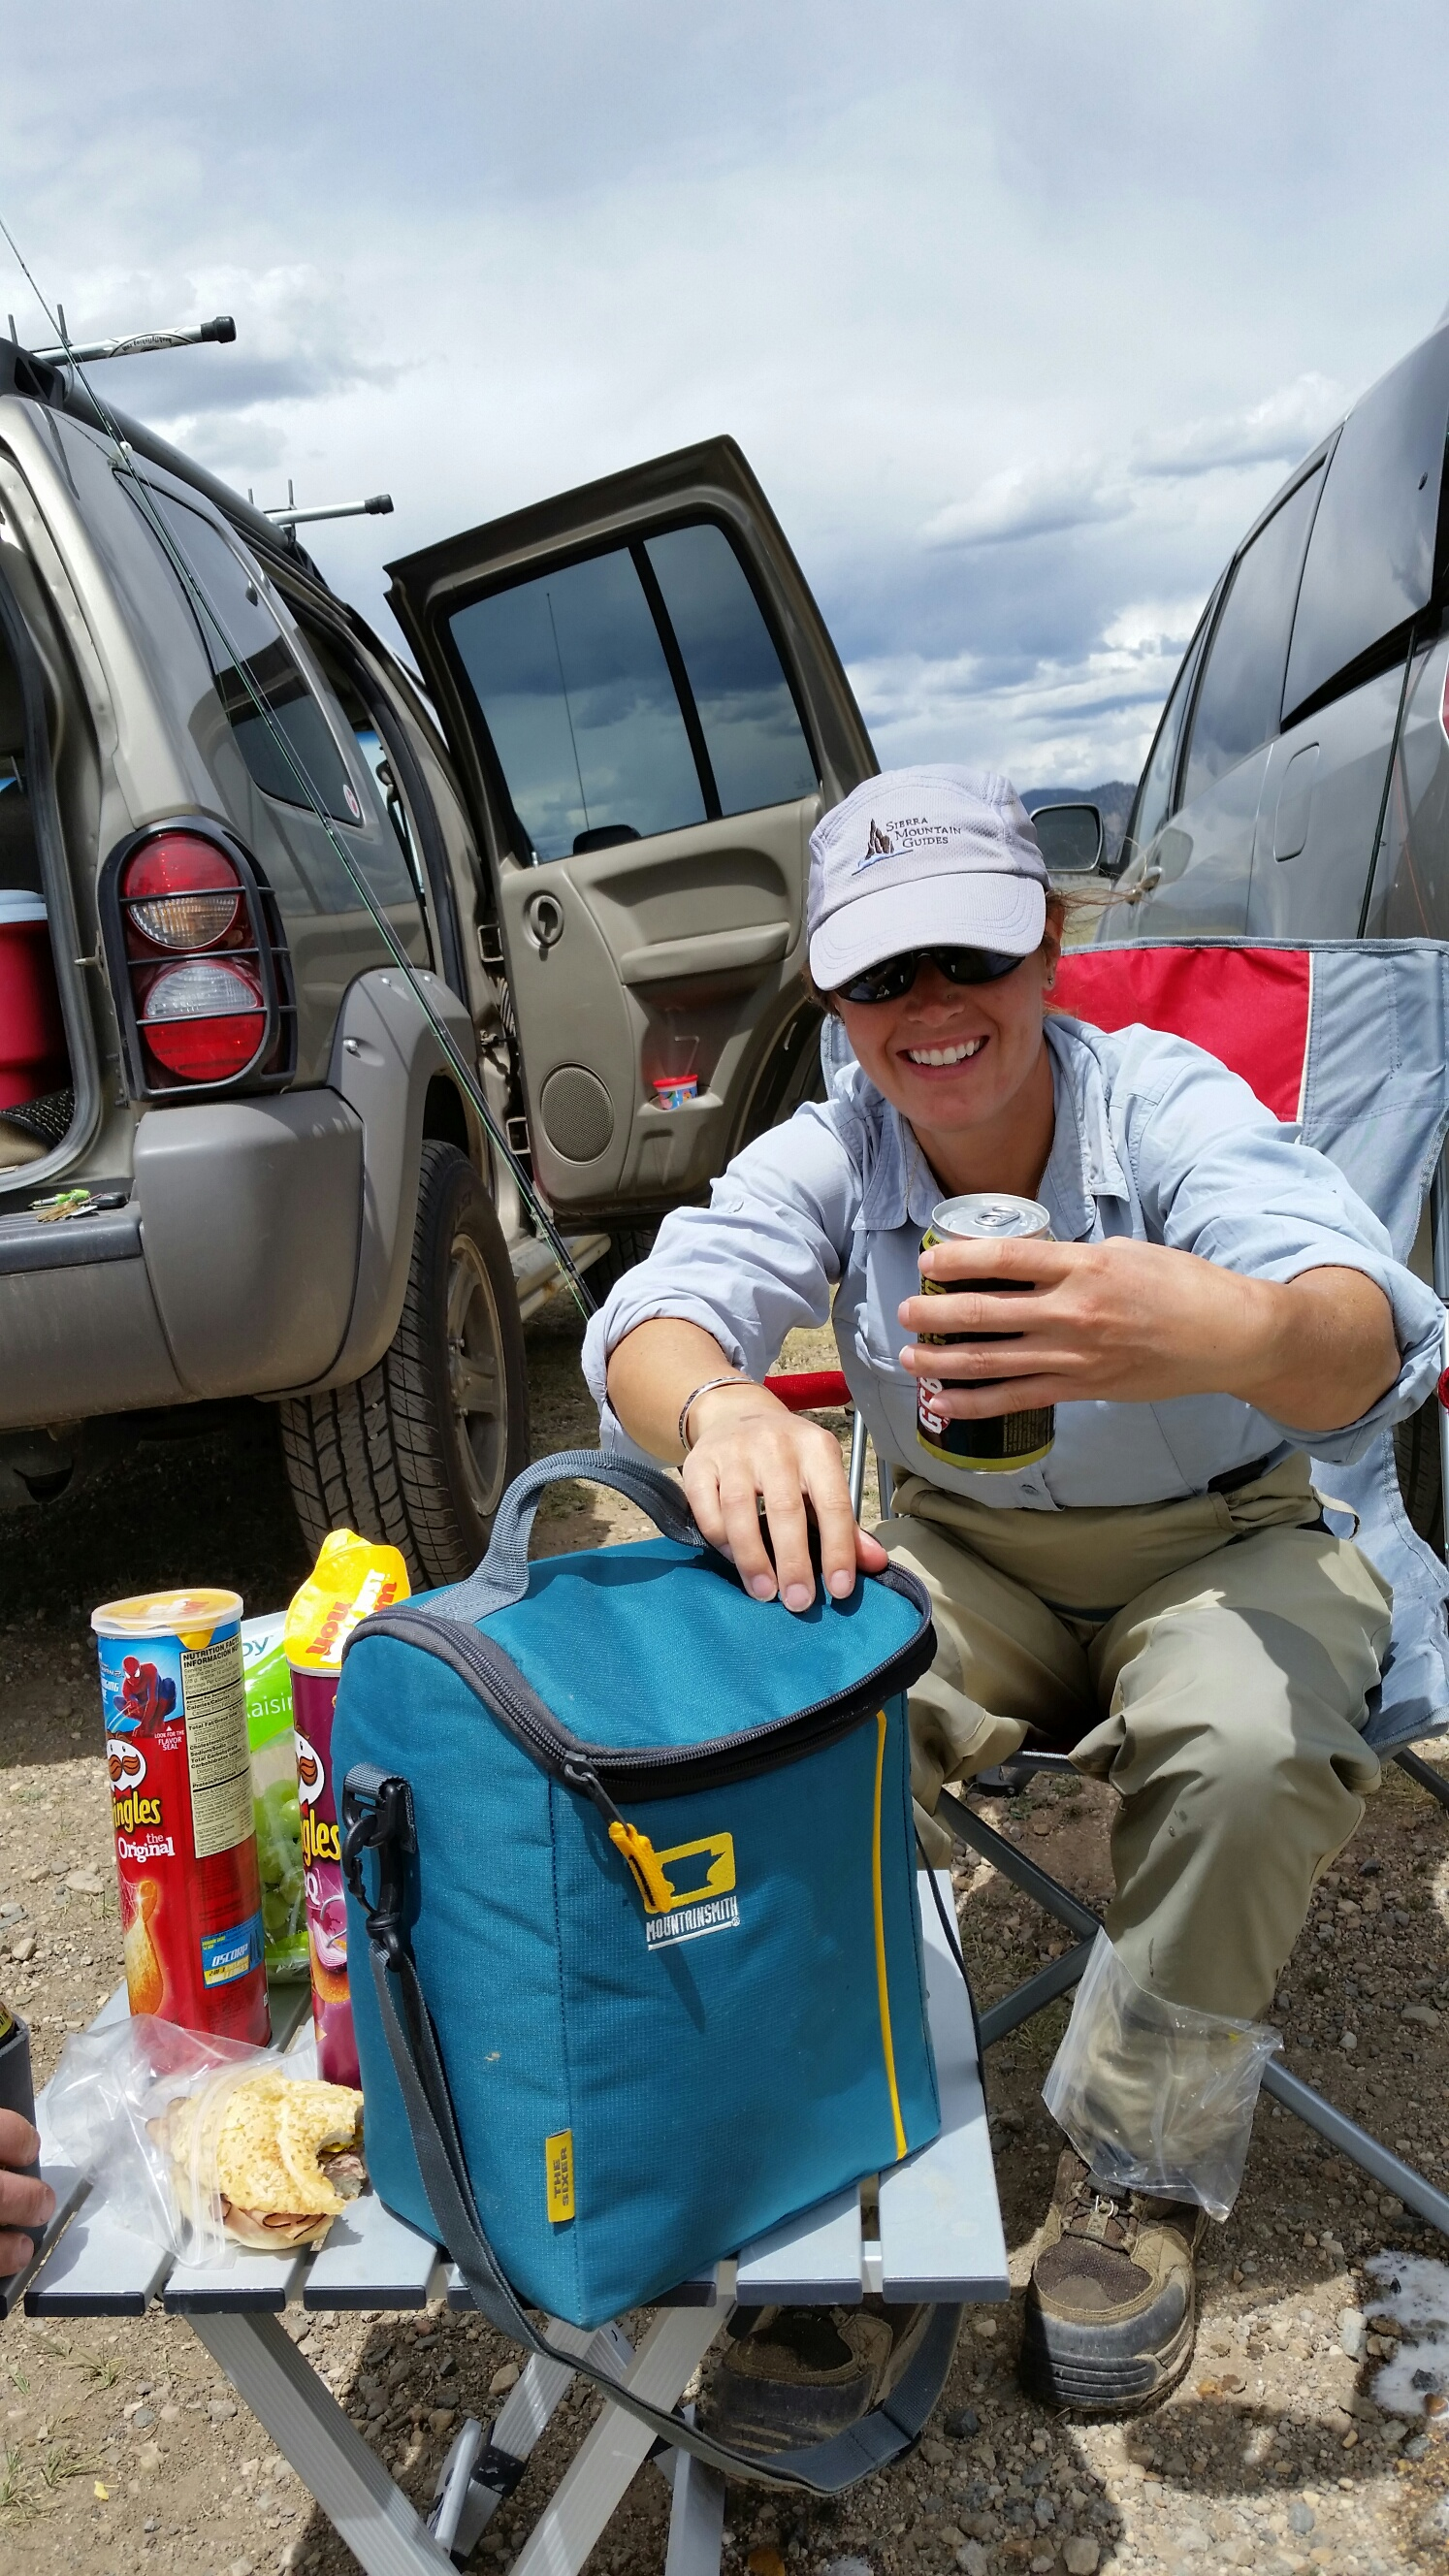 Here, Ashley helps serve up a cold one from The Sixer from Mountainsmith, after a day of fishing the Dream Stream, aka the South Platte River in Colorado